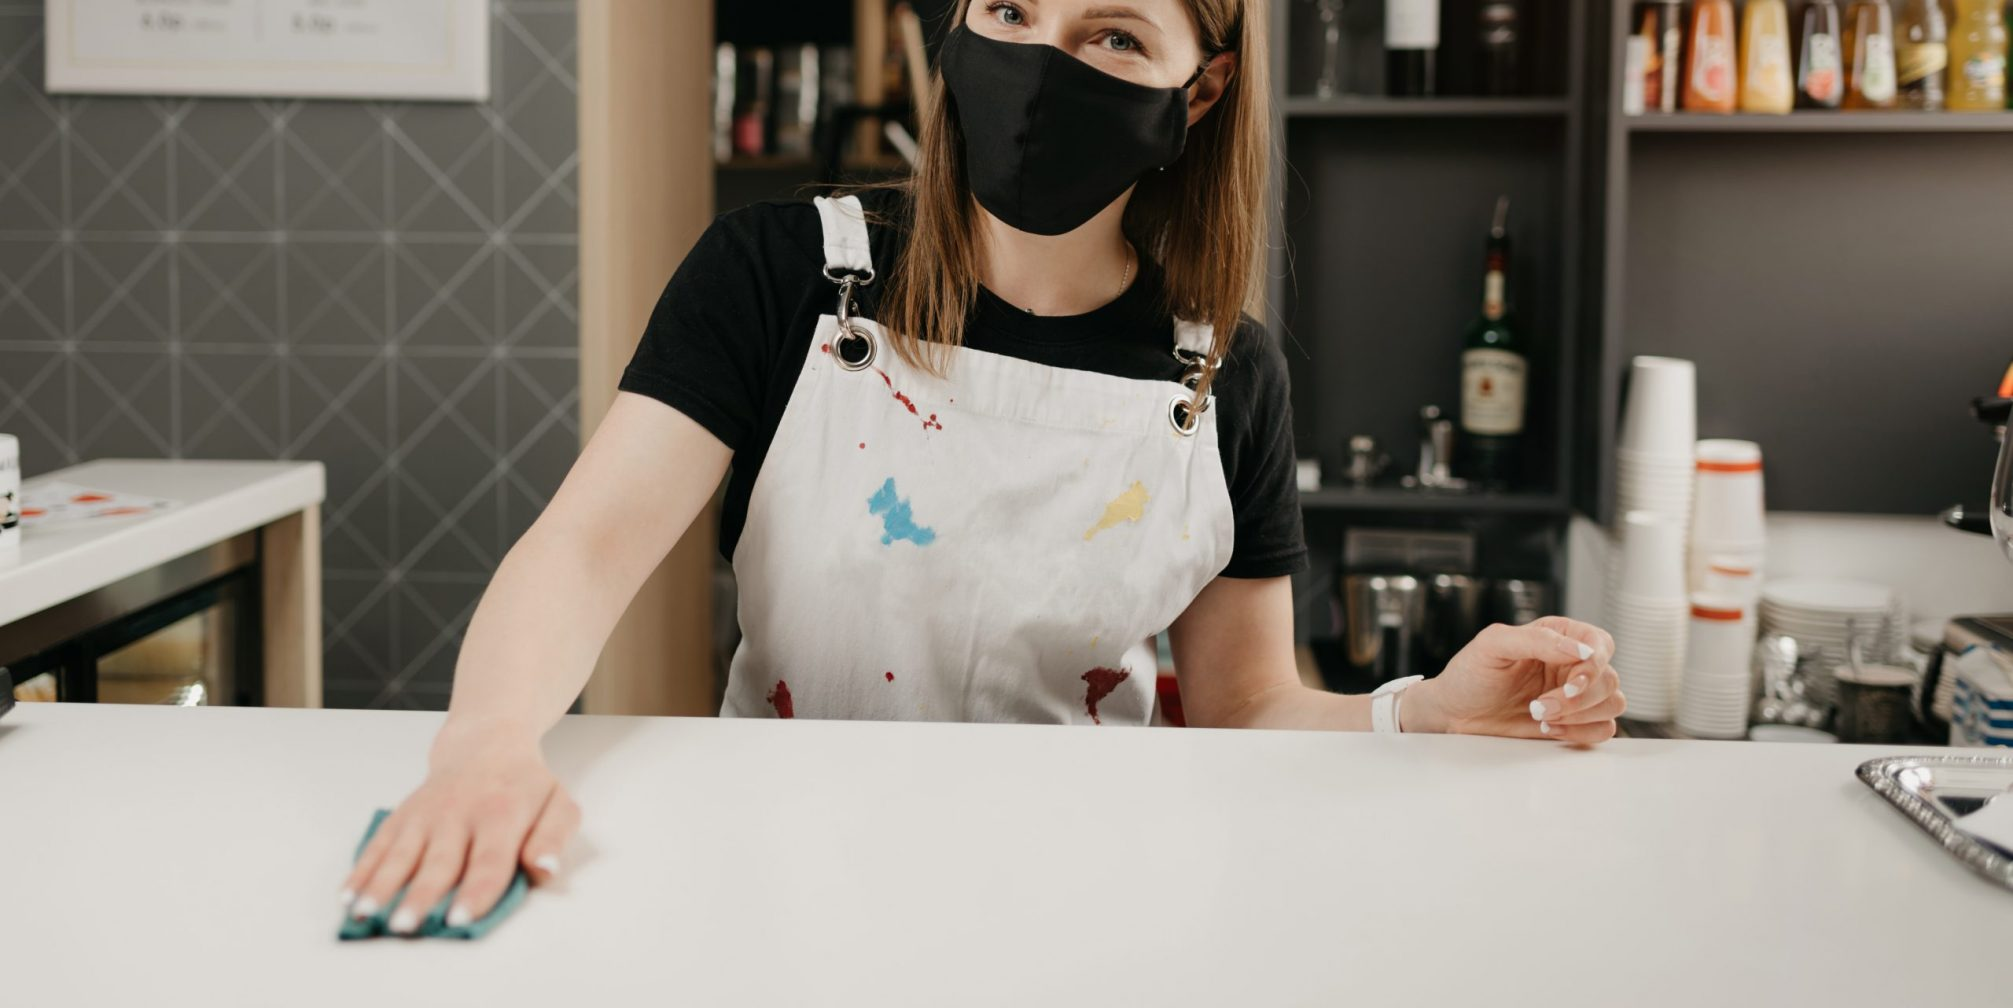 disinfecting a cafe